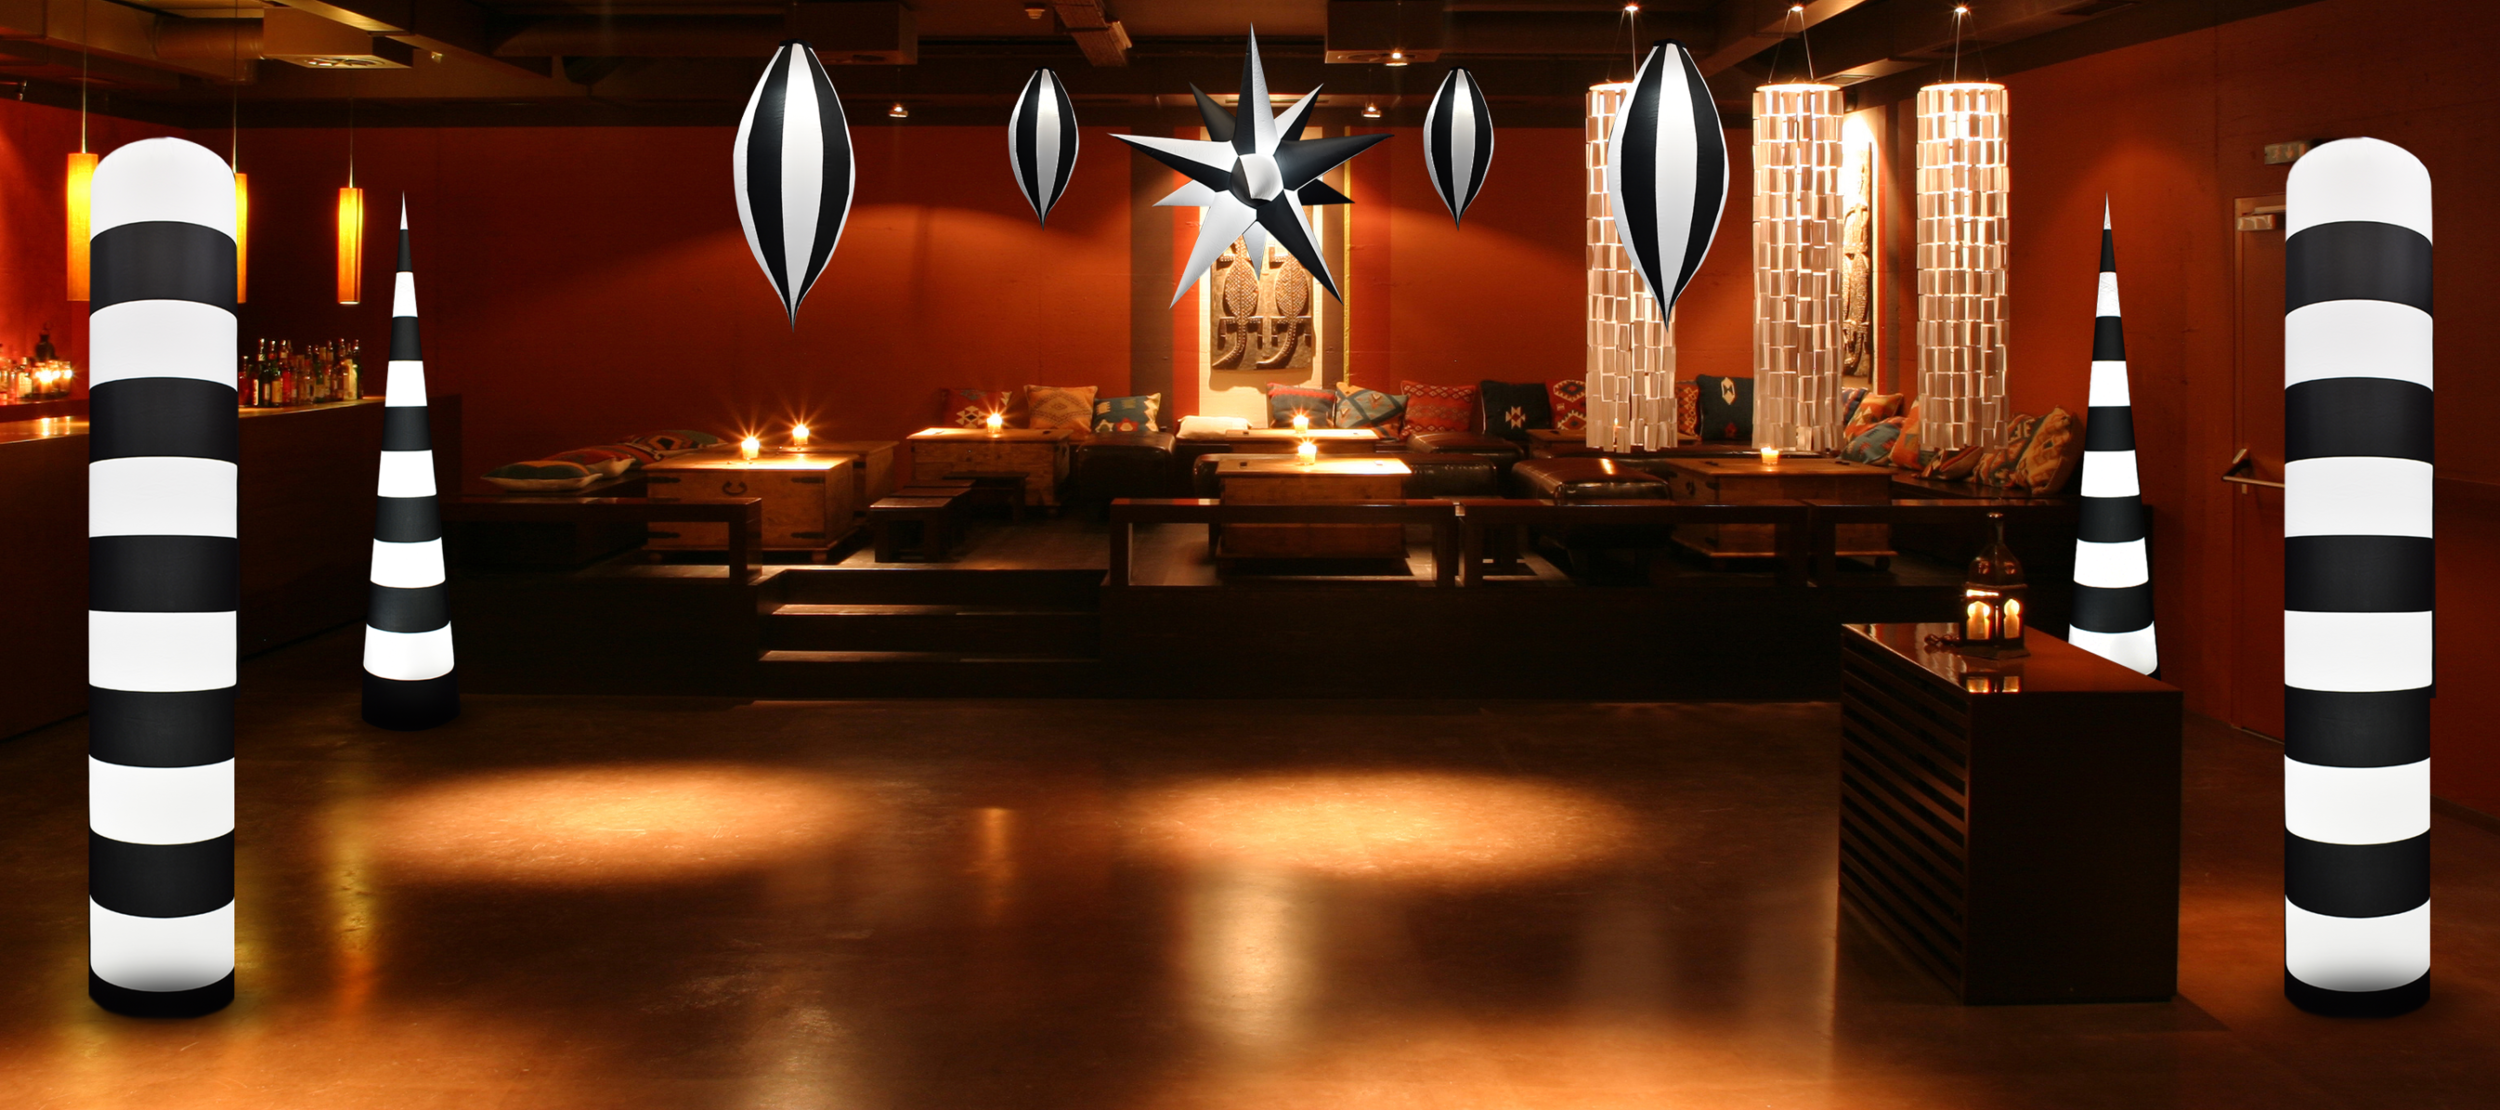 AirDD Black Tie Collection decor in chic candle-lit bar